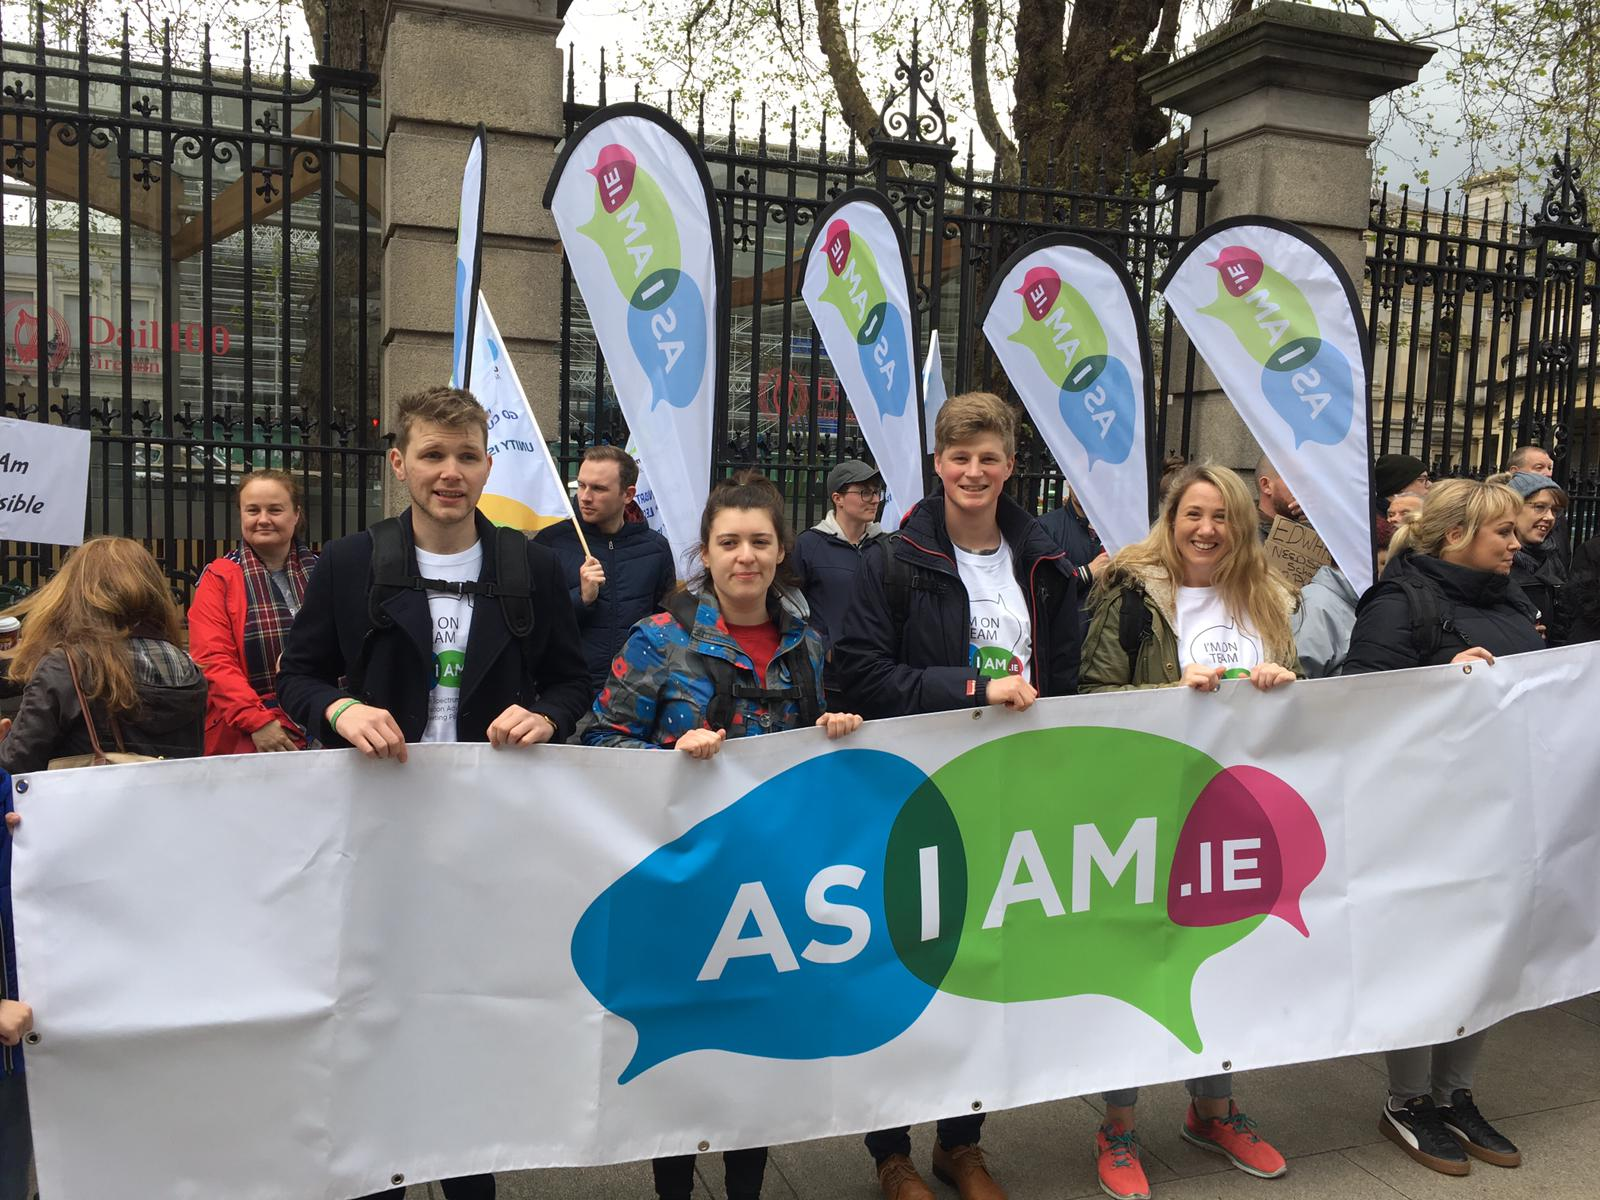 asiam_enough is enough protest_irelands national autism charity and advocacy organisation